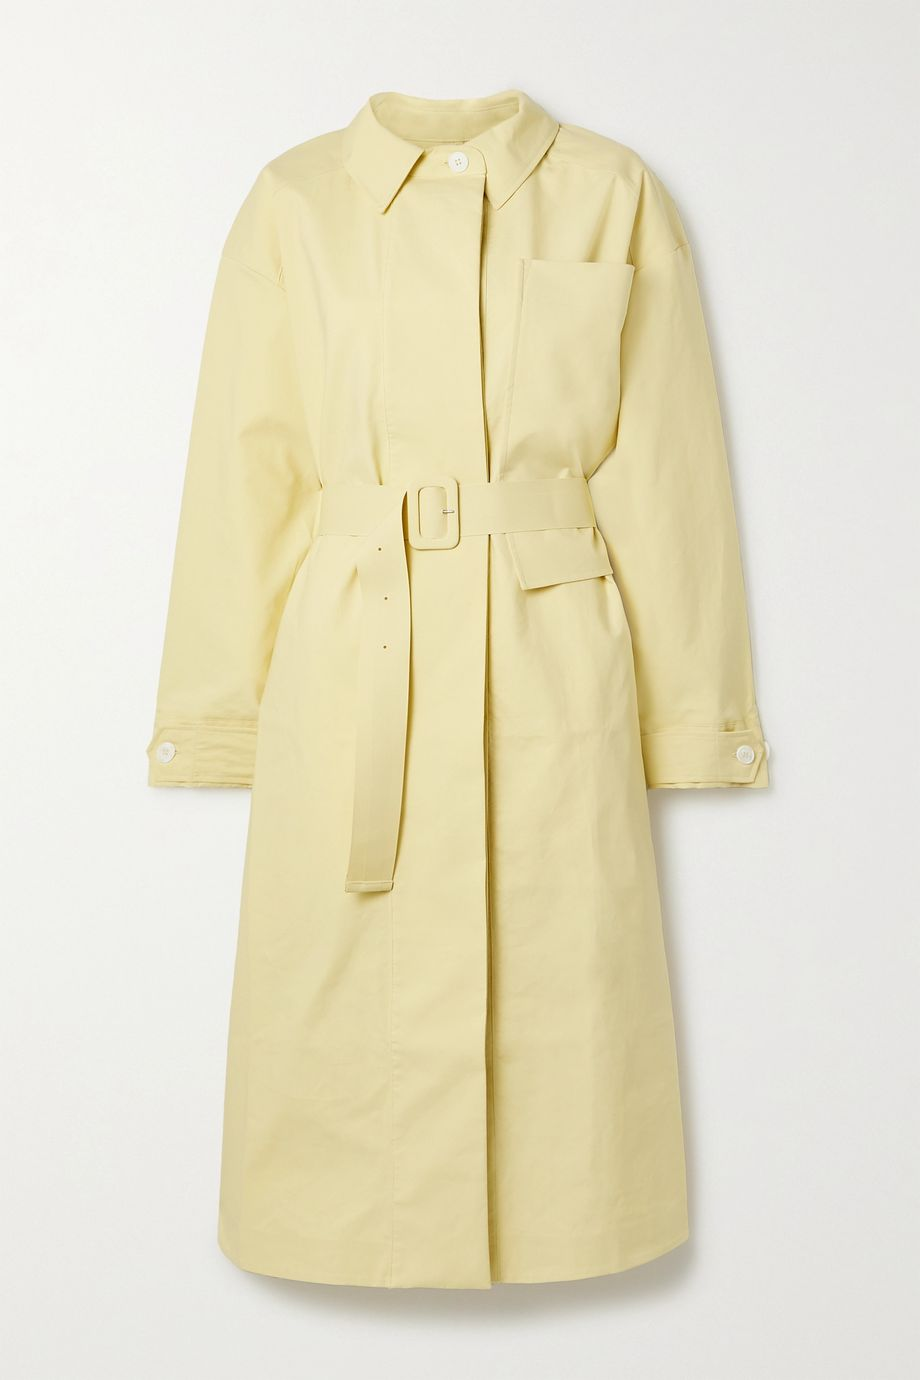 Jacquemus Camiseto belted cotton trench coat